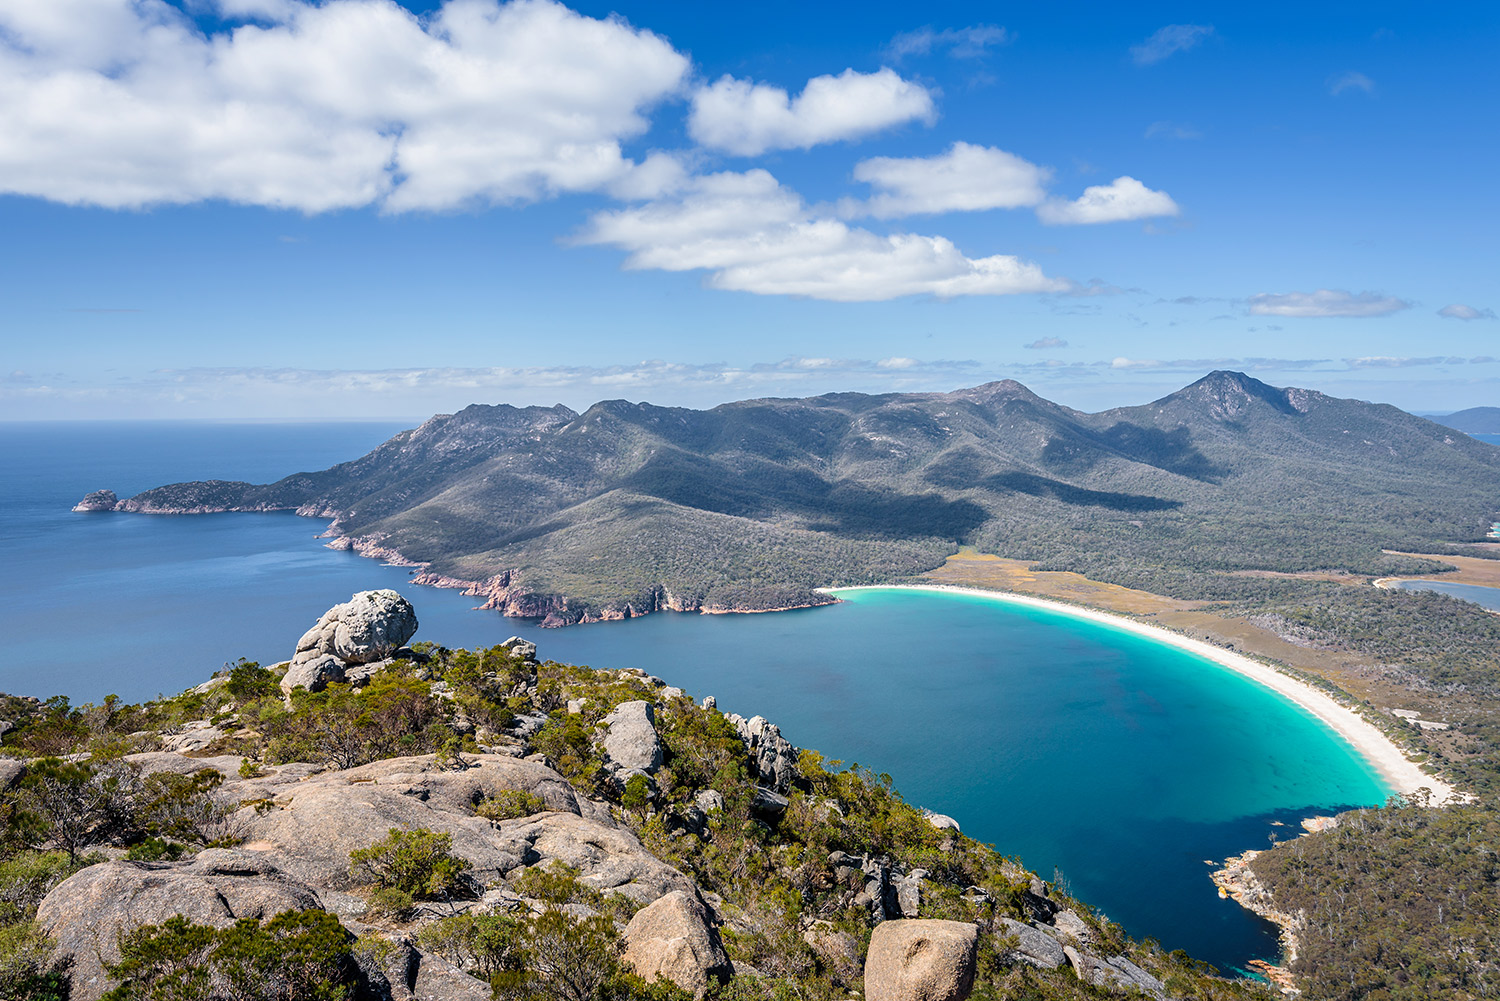 Wineglass Bay, von Tom Jastram / Shutterstock